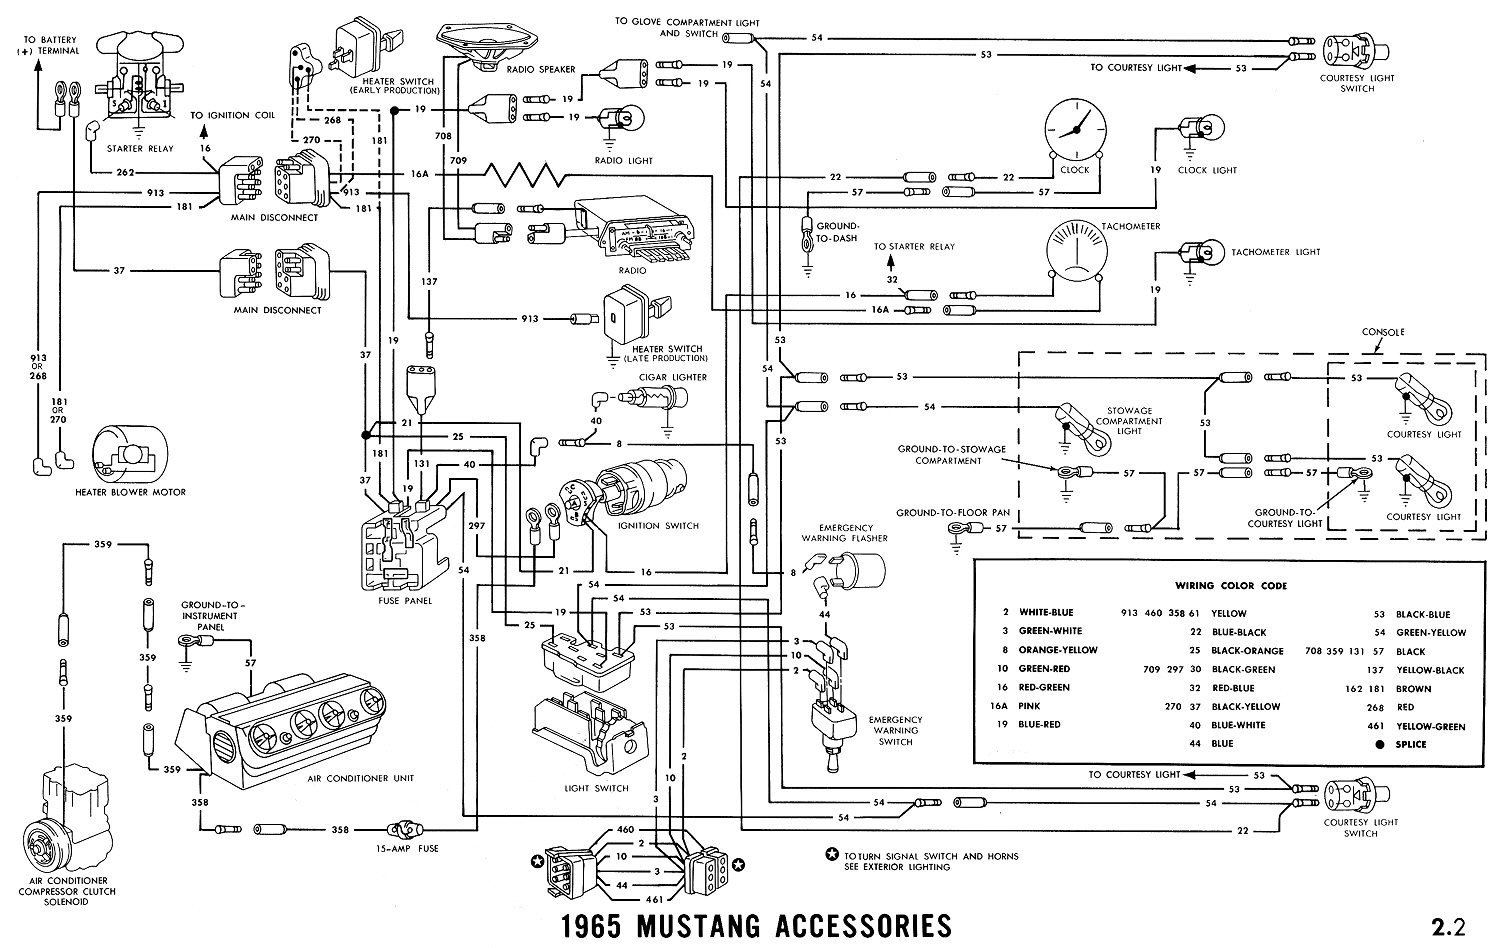 1965i 1965 mustang wiring diagrams average joe restoration 1965 mustang wiring diagram pdf at edmiracle.co